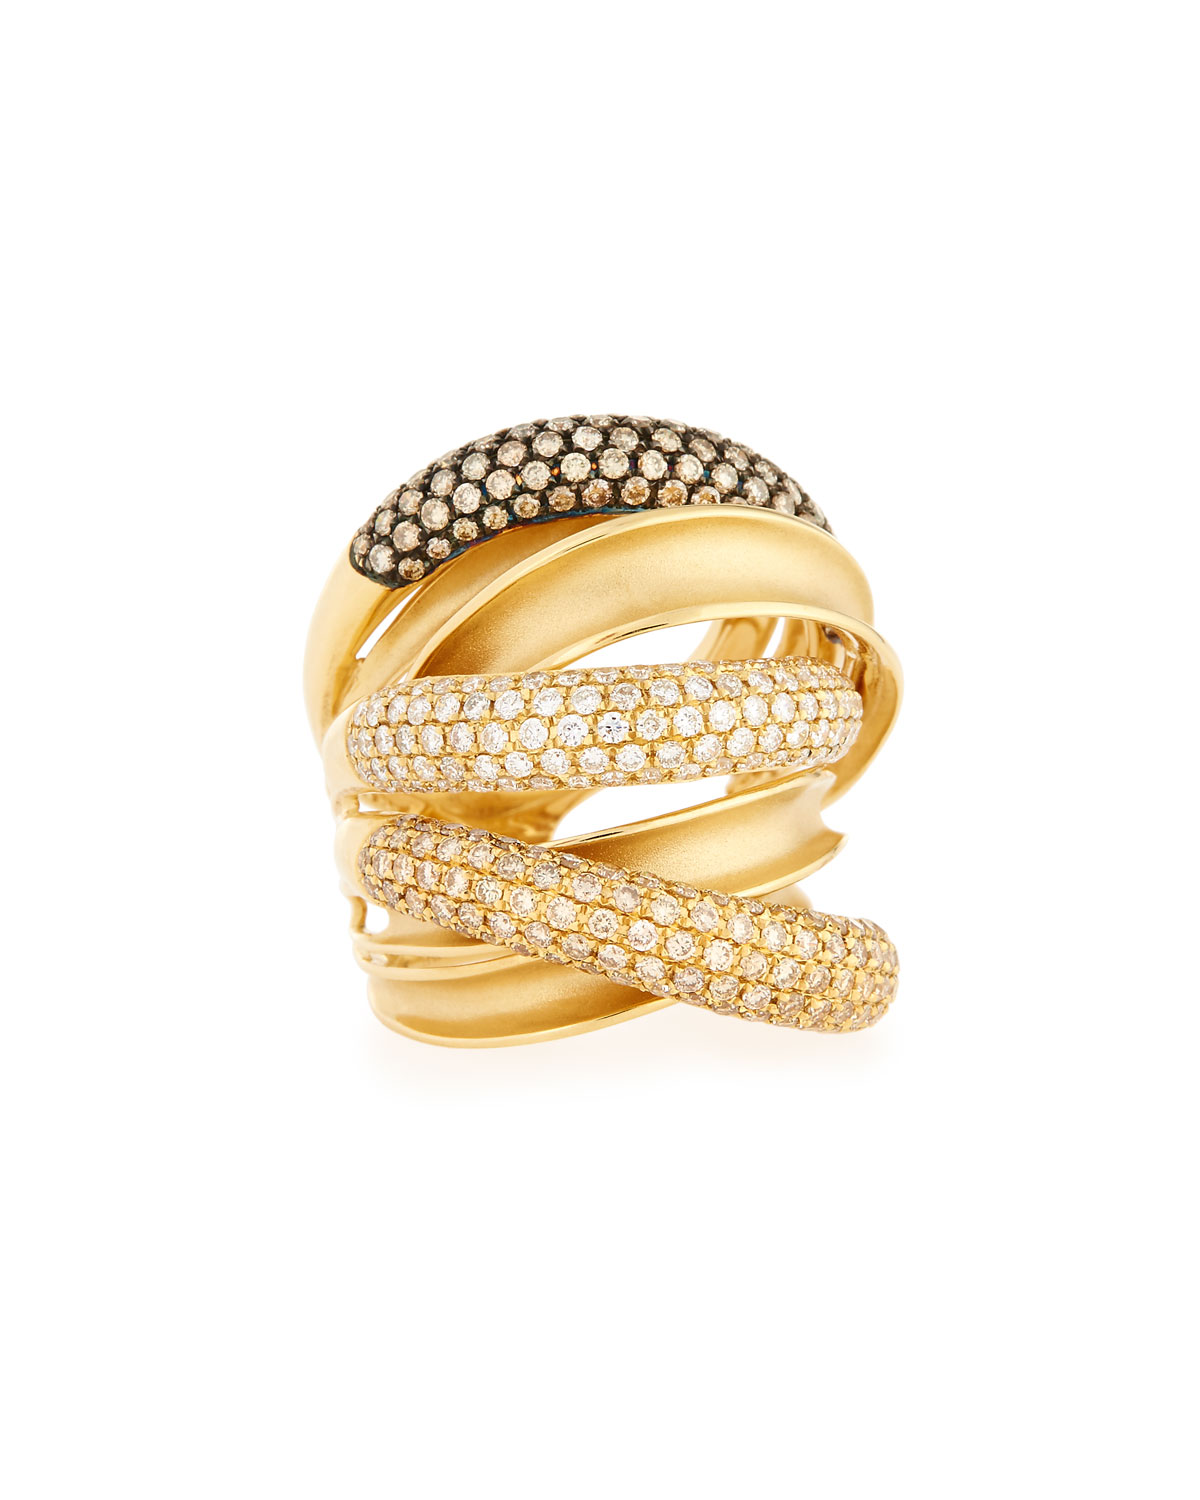 BESSA 18K YELLOW GOLD MULTI-ROW RING WITH CHAMPAGNE AND WHITE DIAMONDS